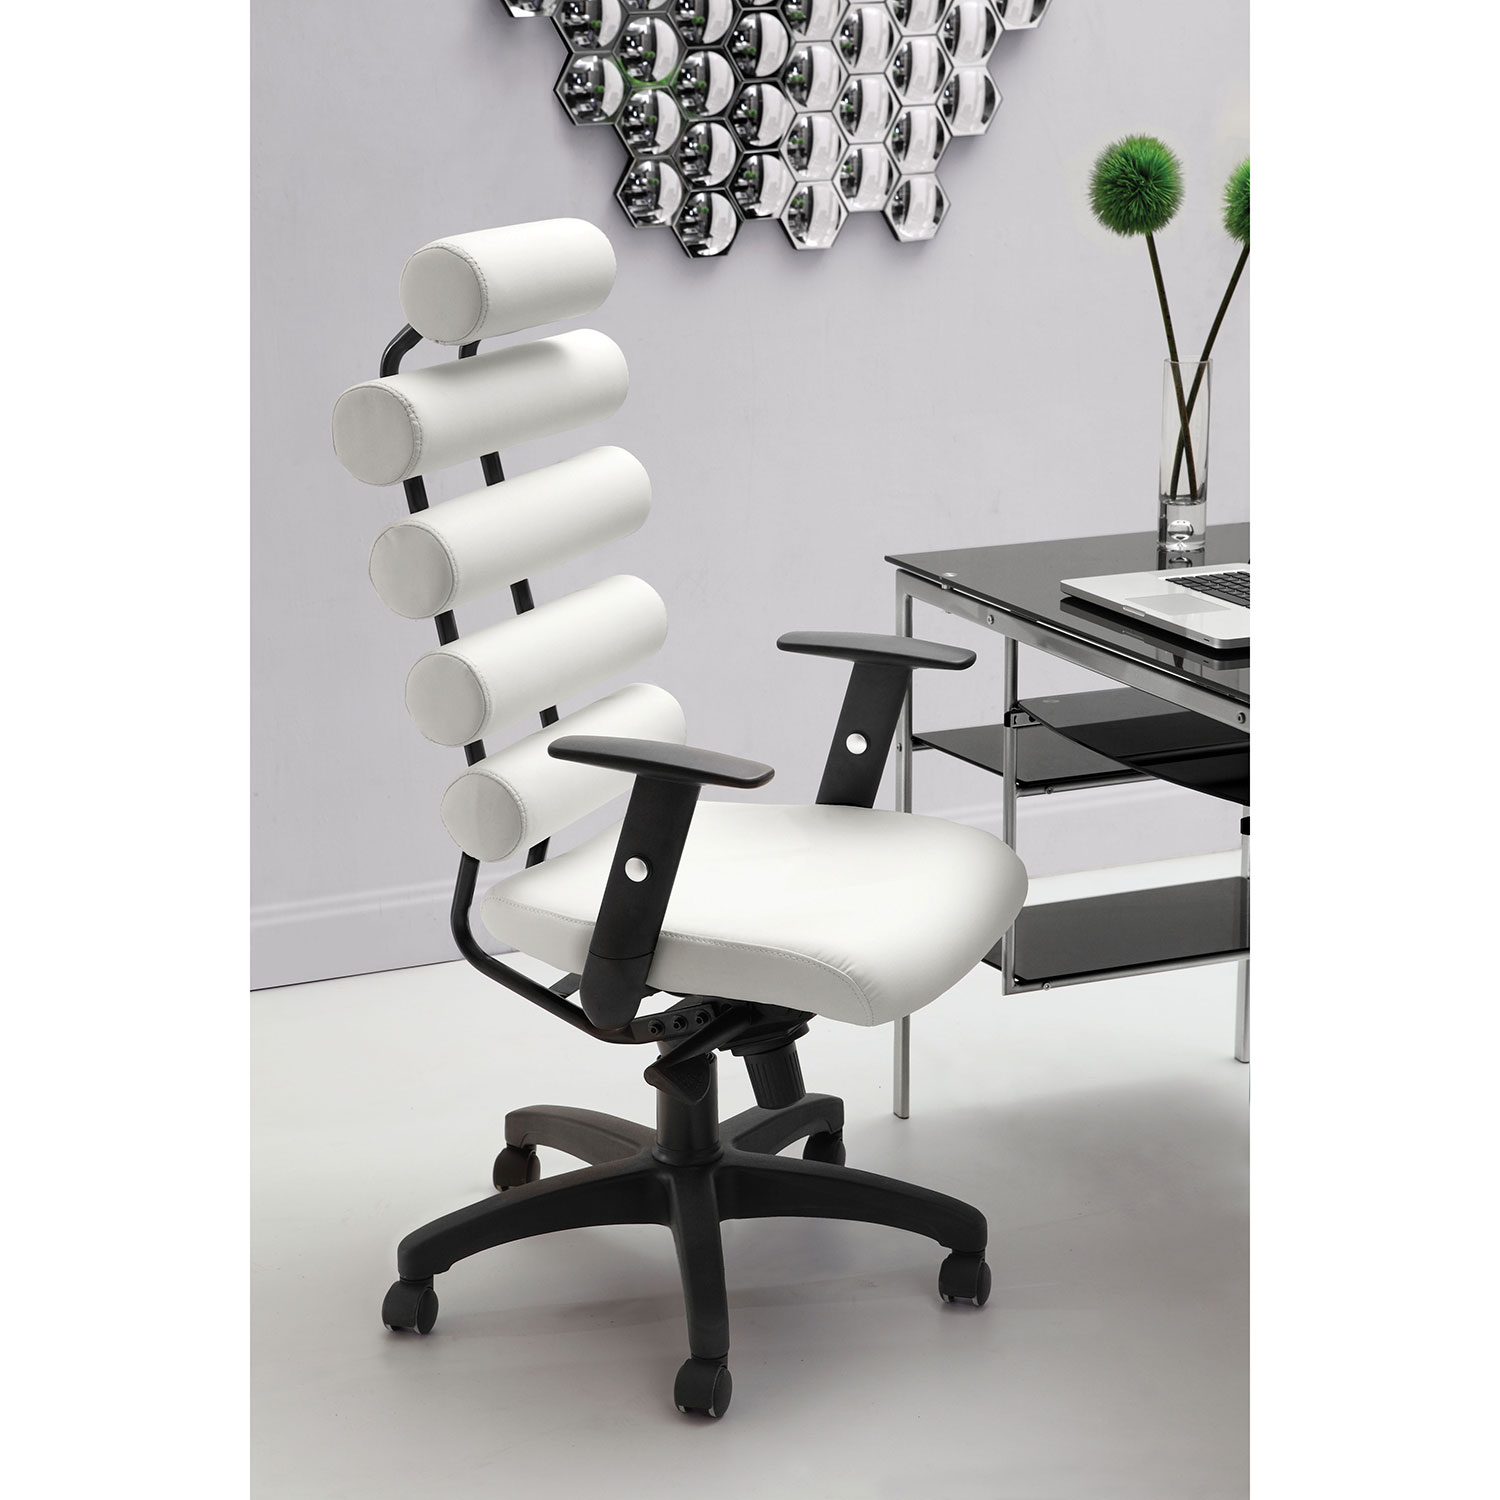 Zuo Unico Leatherette Office Chair   White : Office Chairs   Best Buy Canada